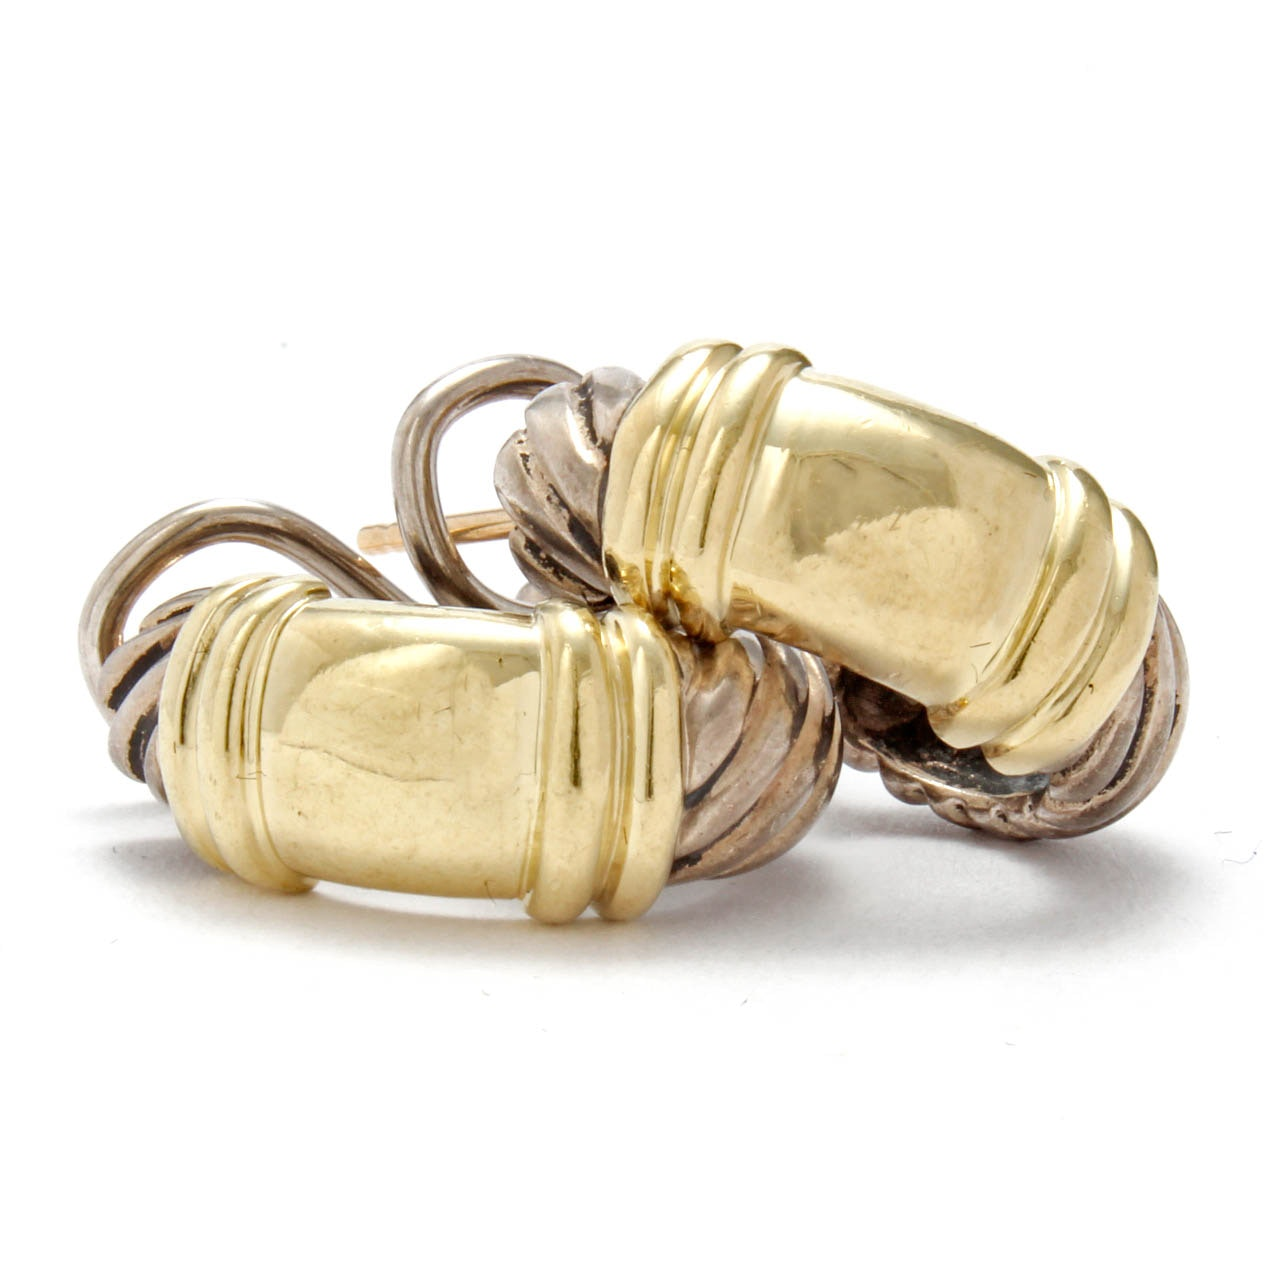 David Yurman Sterling Silver with 14K Yellow Gold Accented Earrings